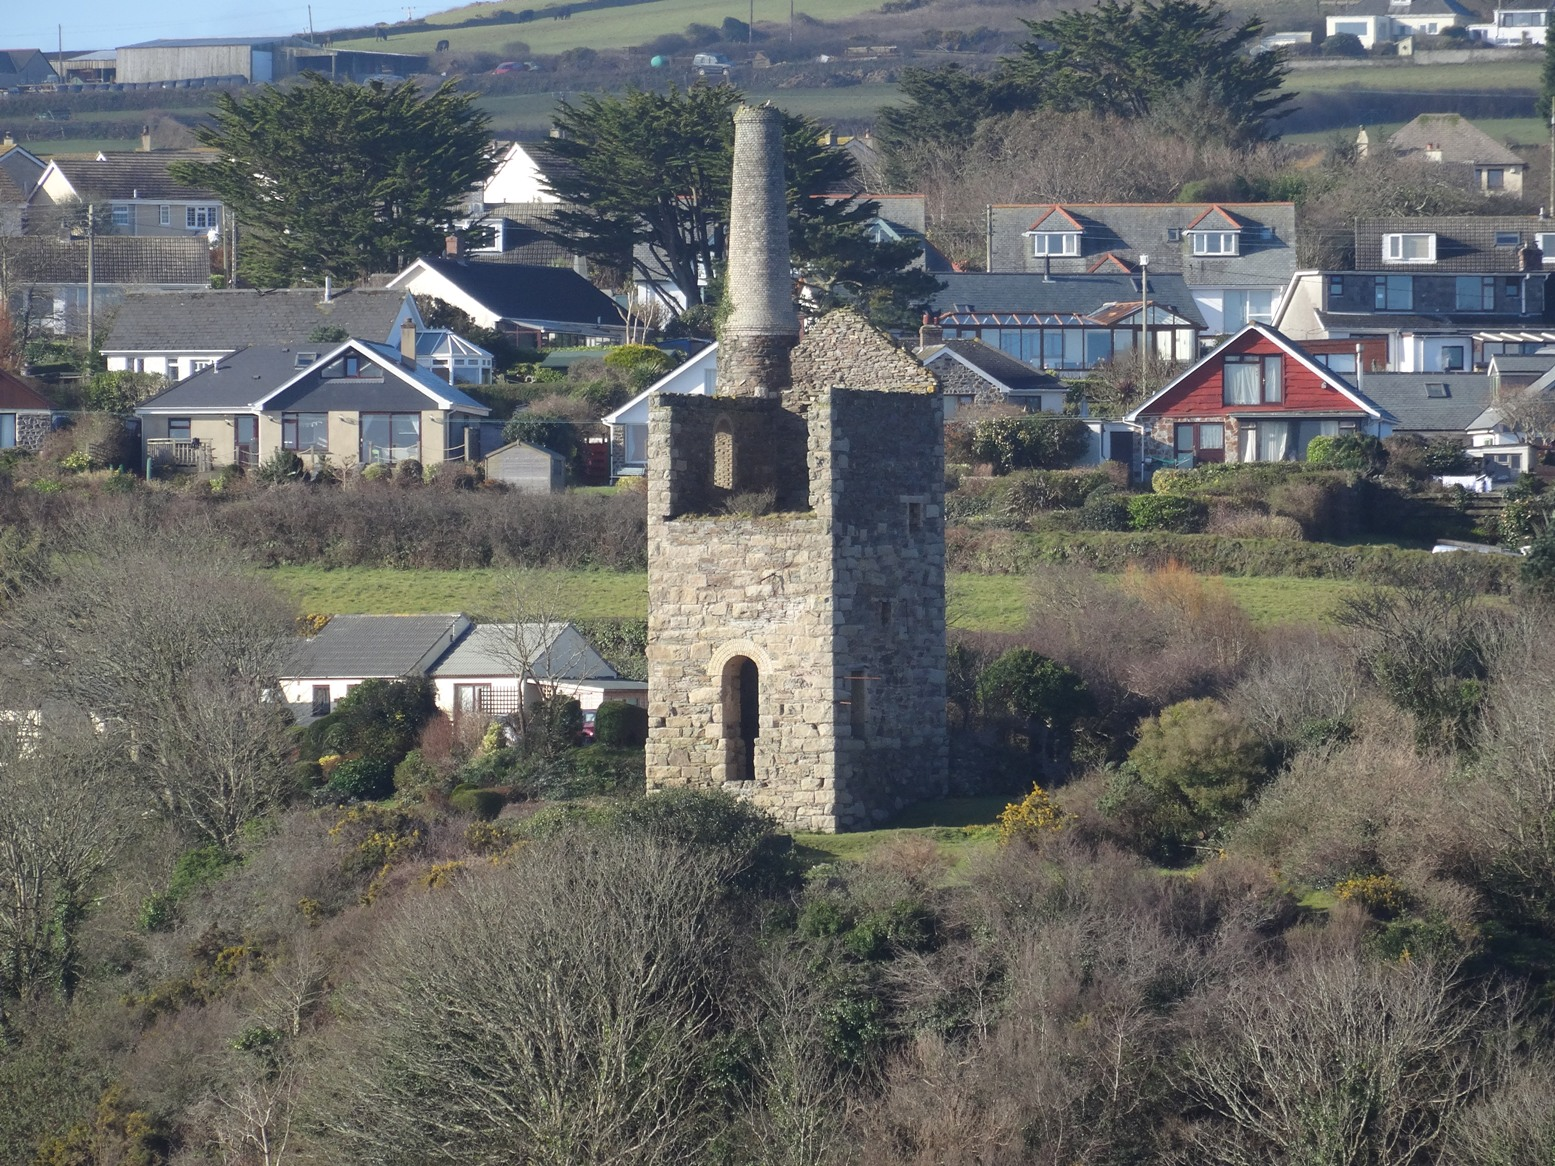 Mine engine house surrounded by houses